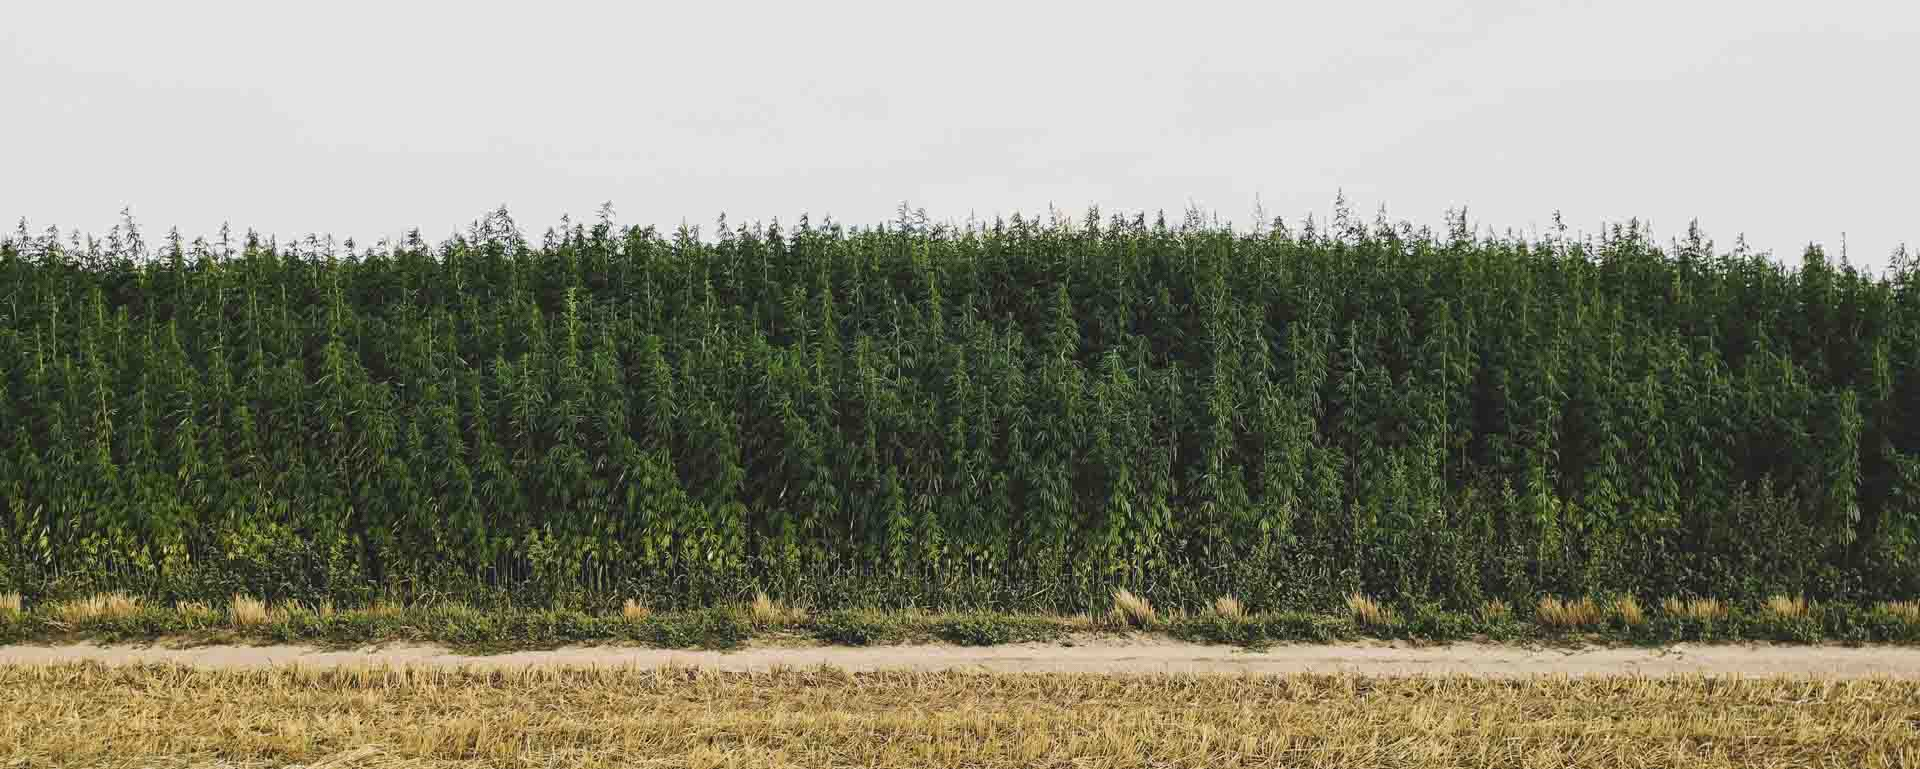 Is growing hemp for CBD legal in Ireland?